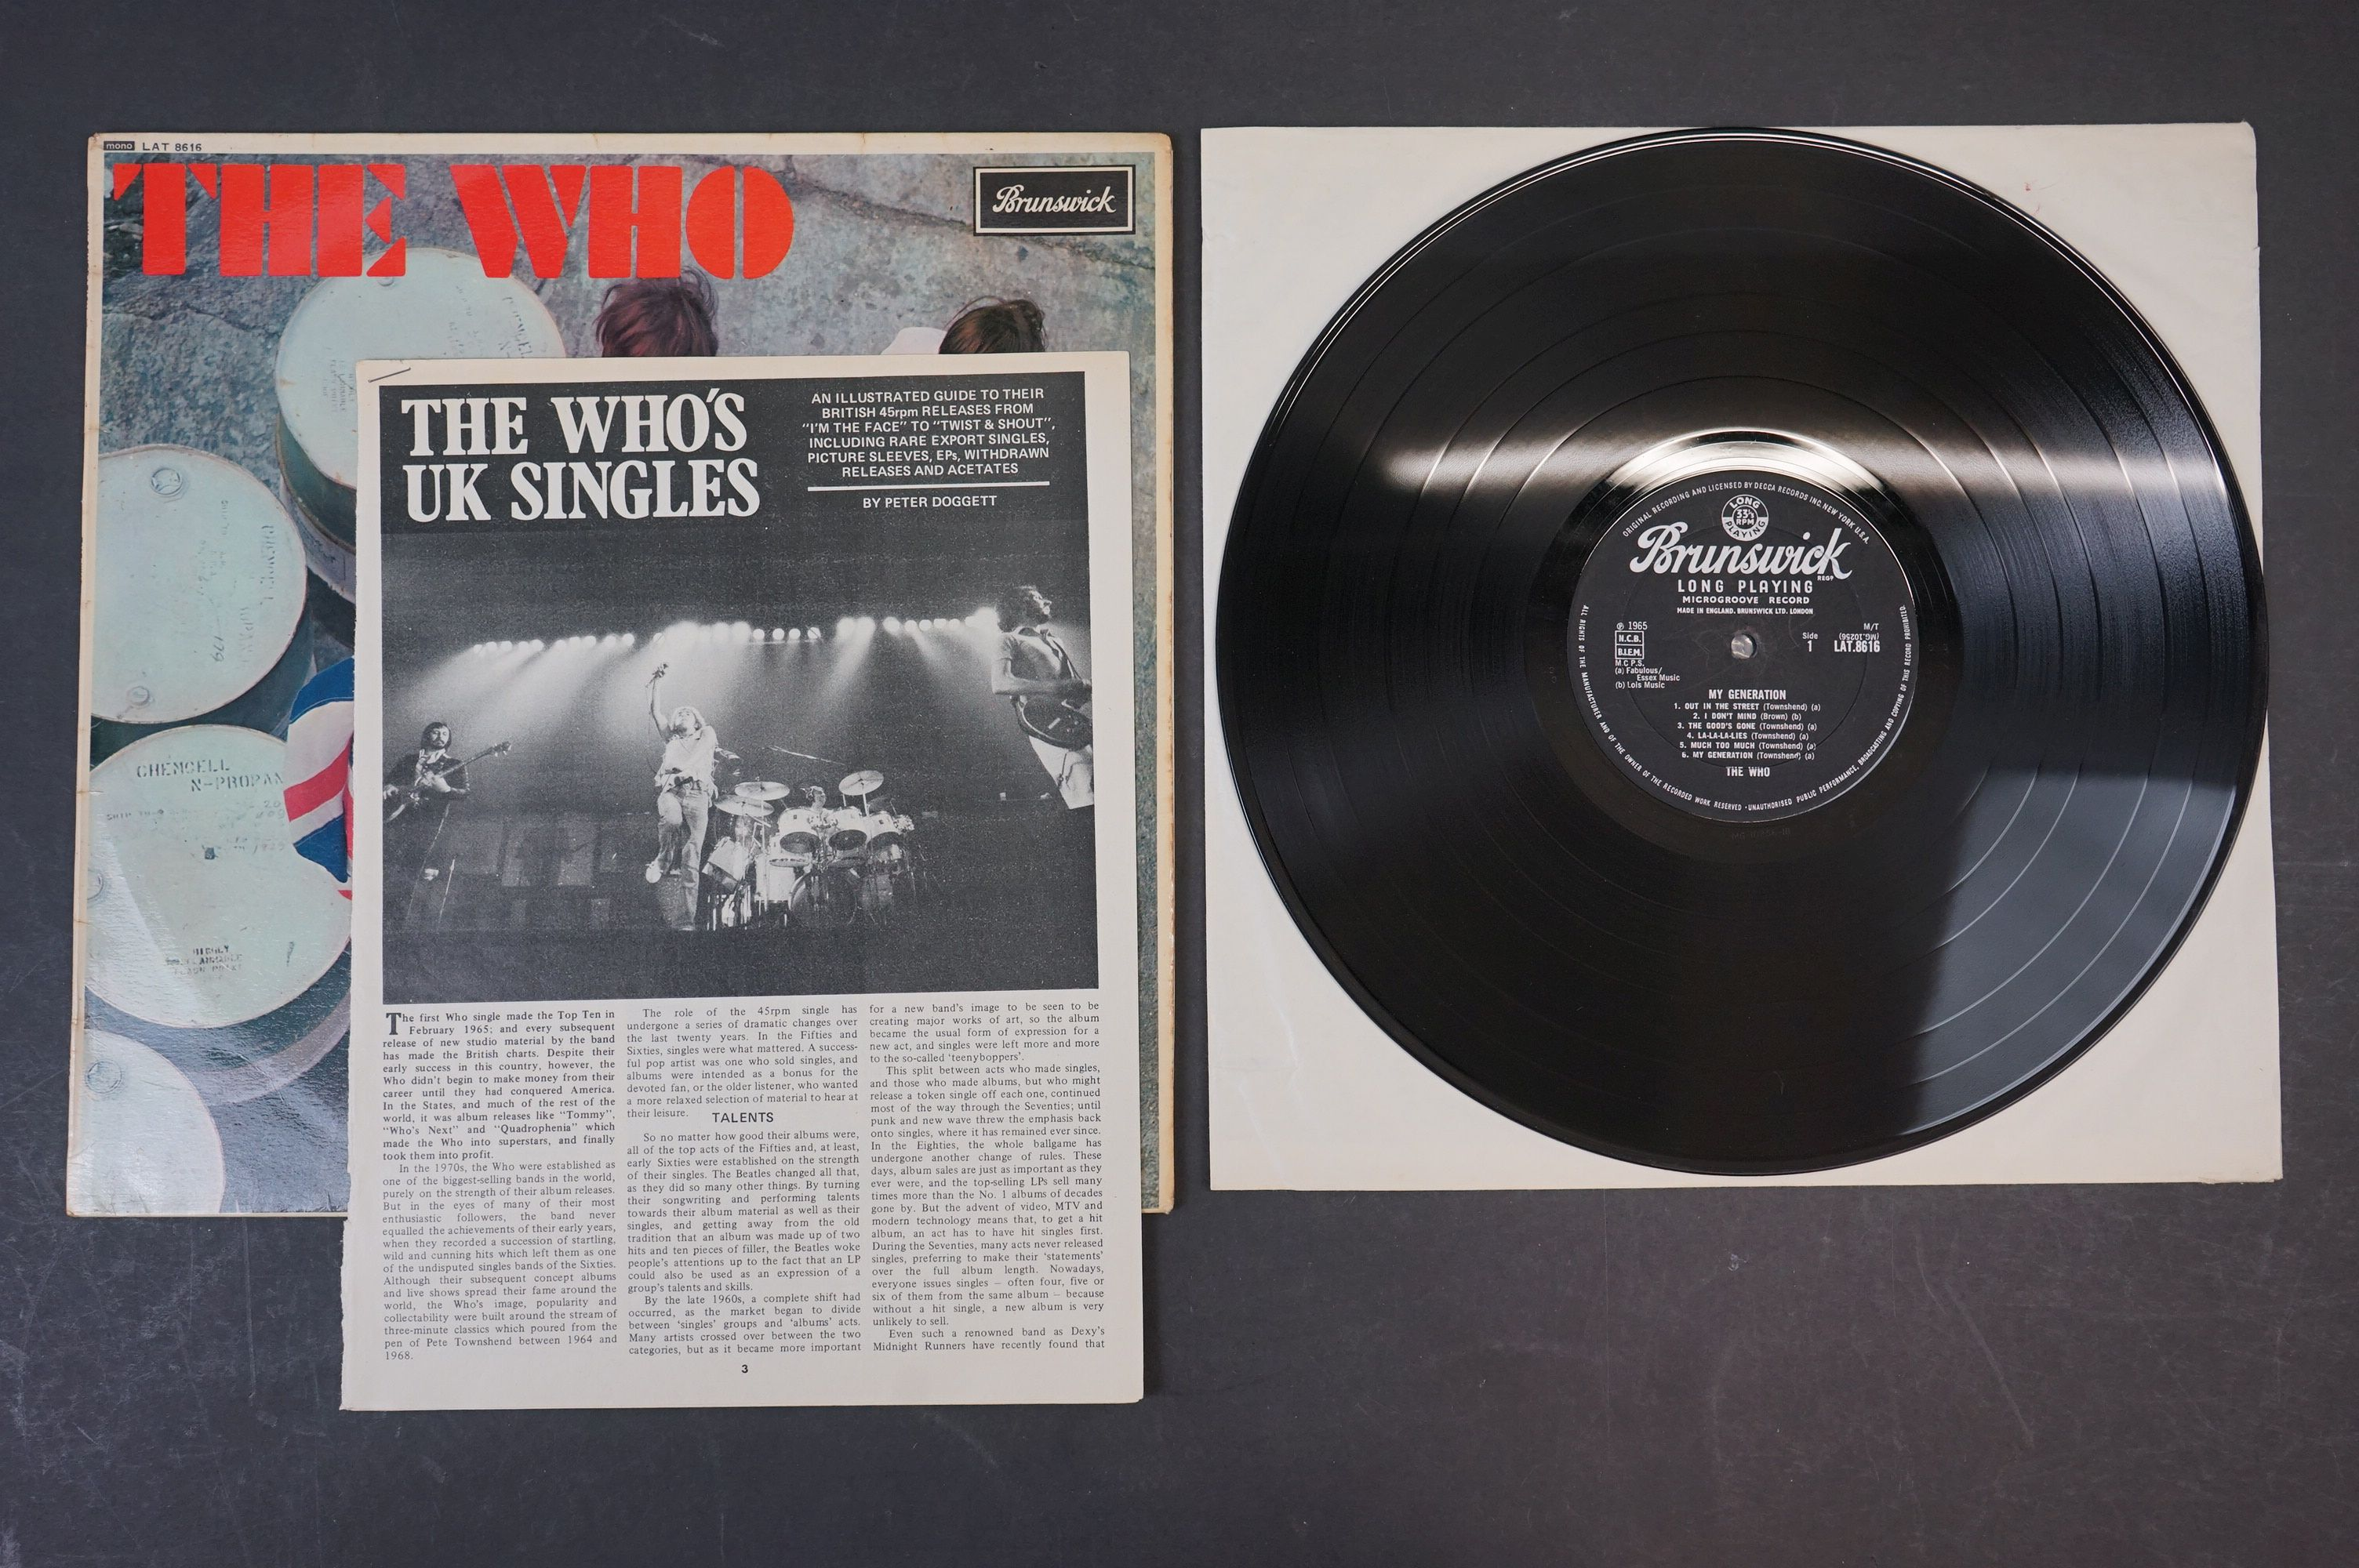 Vinyl - The Who My Generation LP on Brunswick LAT8616 mono with laminated front sleeve, silver &